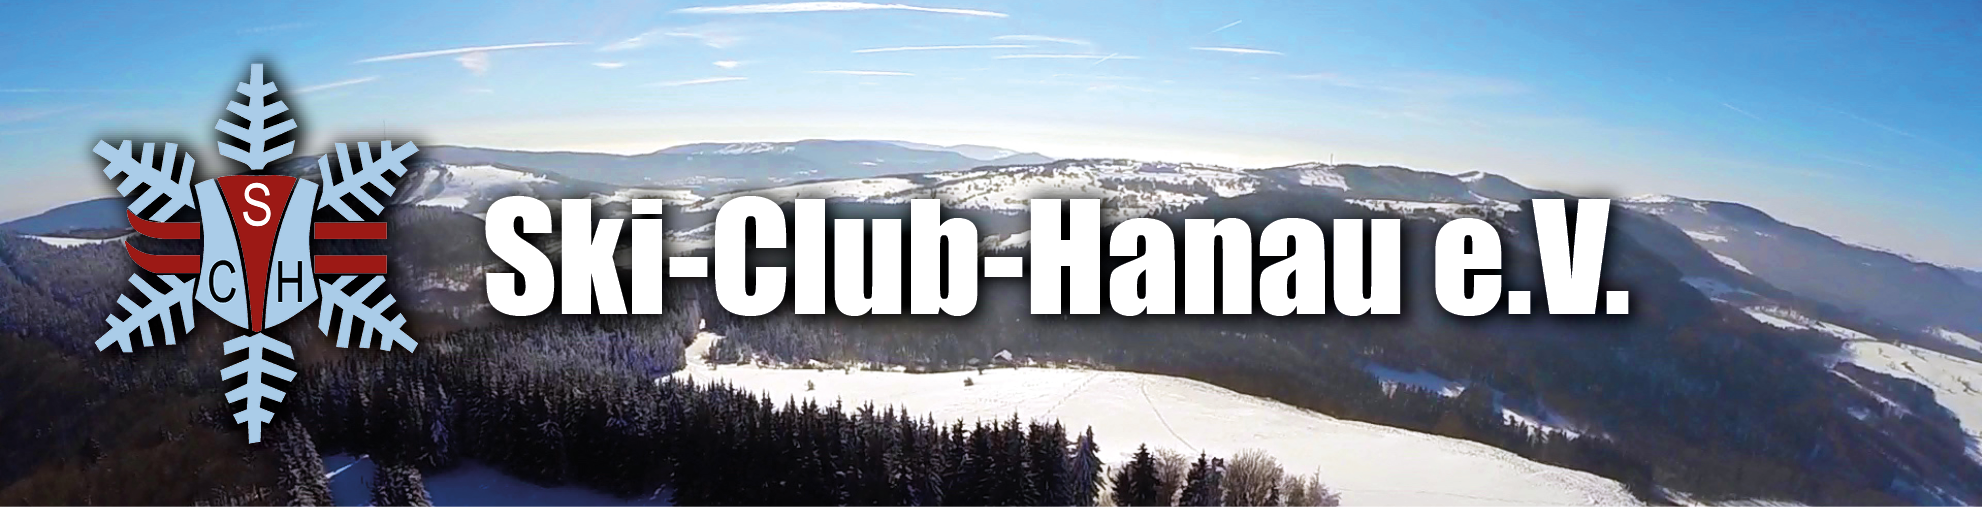 Skiclub Hanau